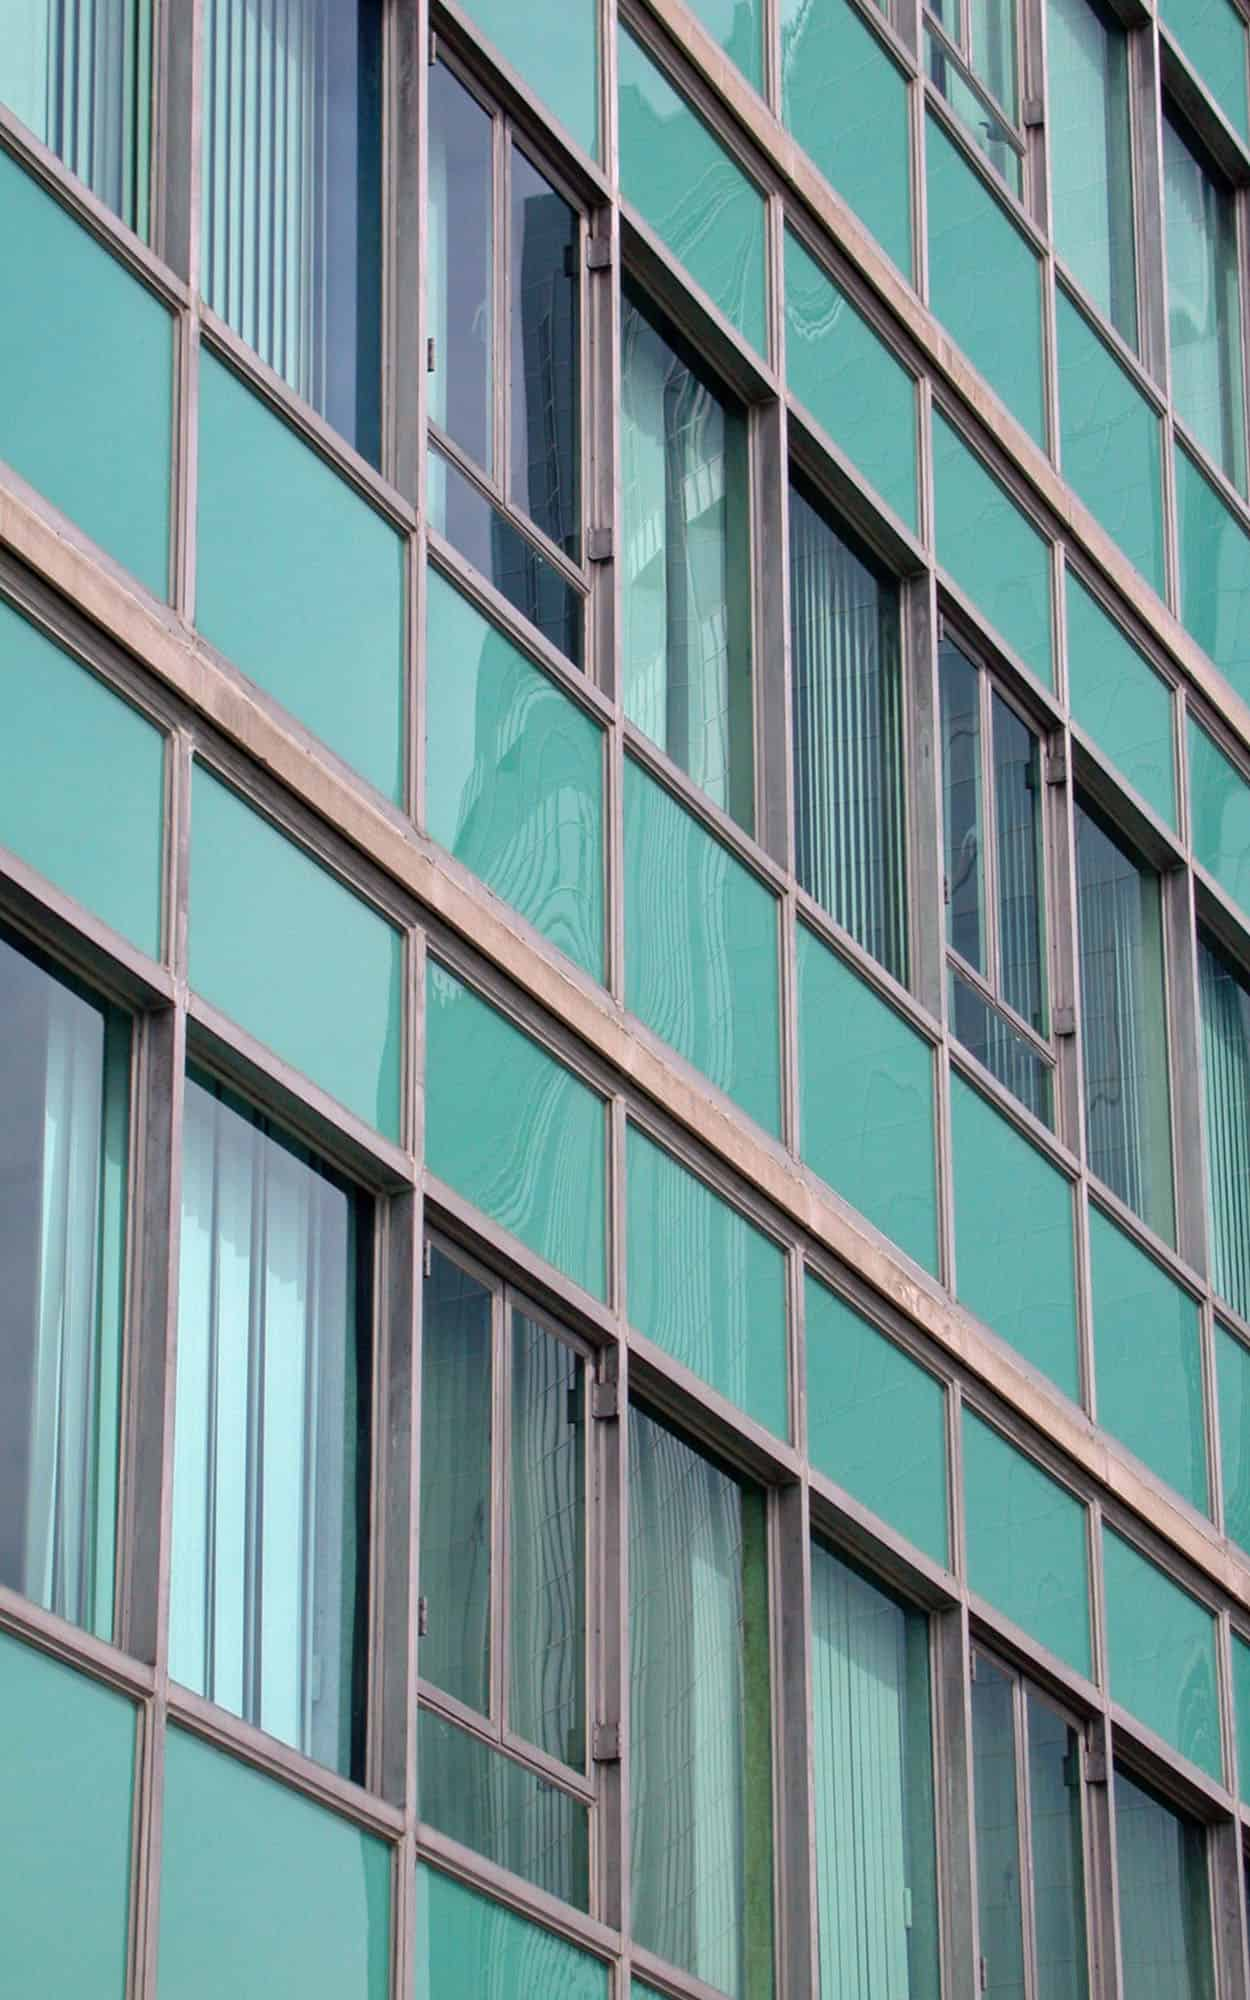 Detail of the curtainwall